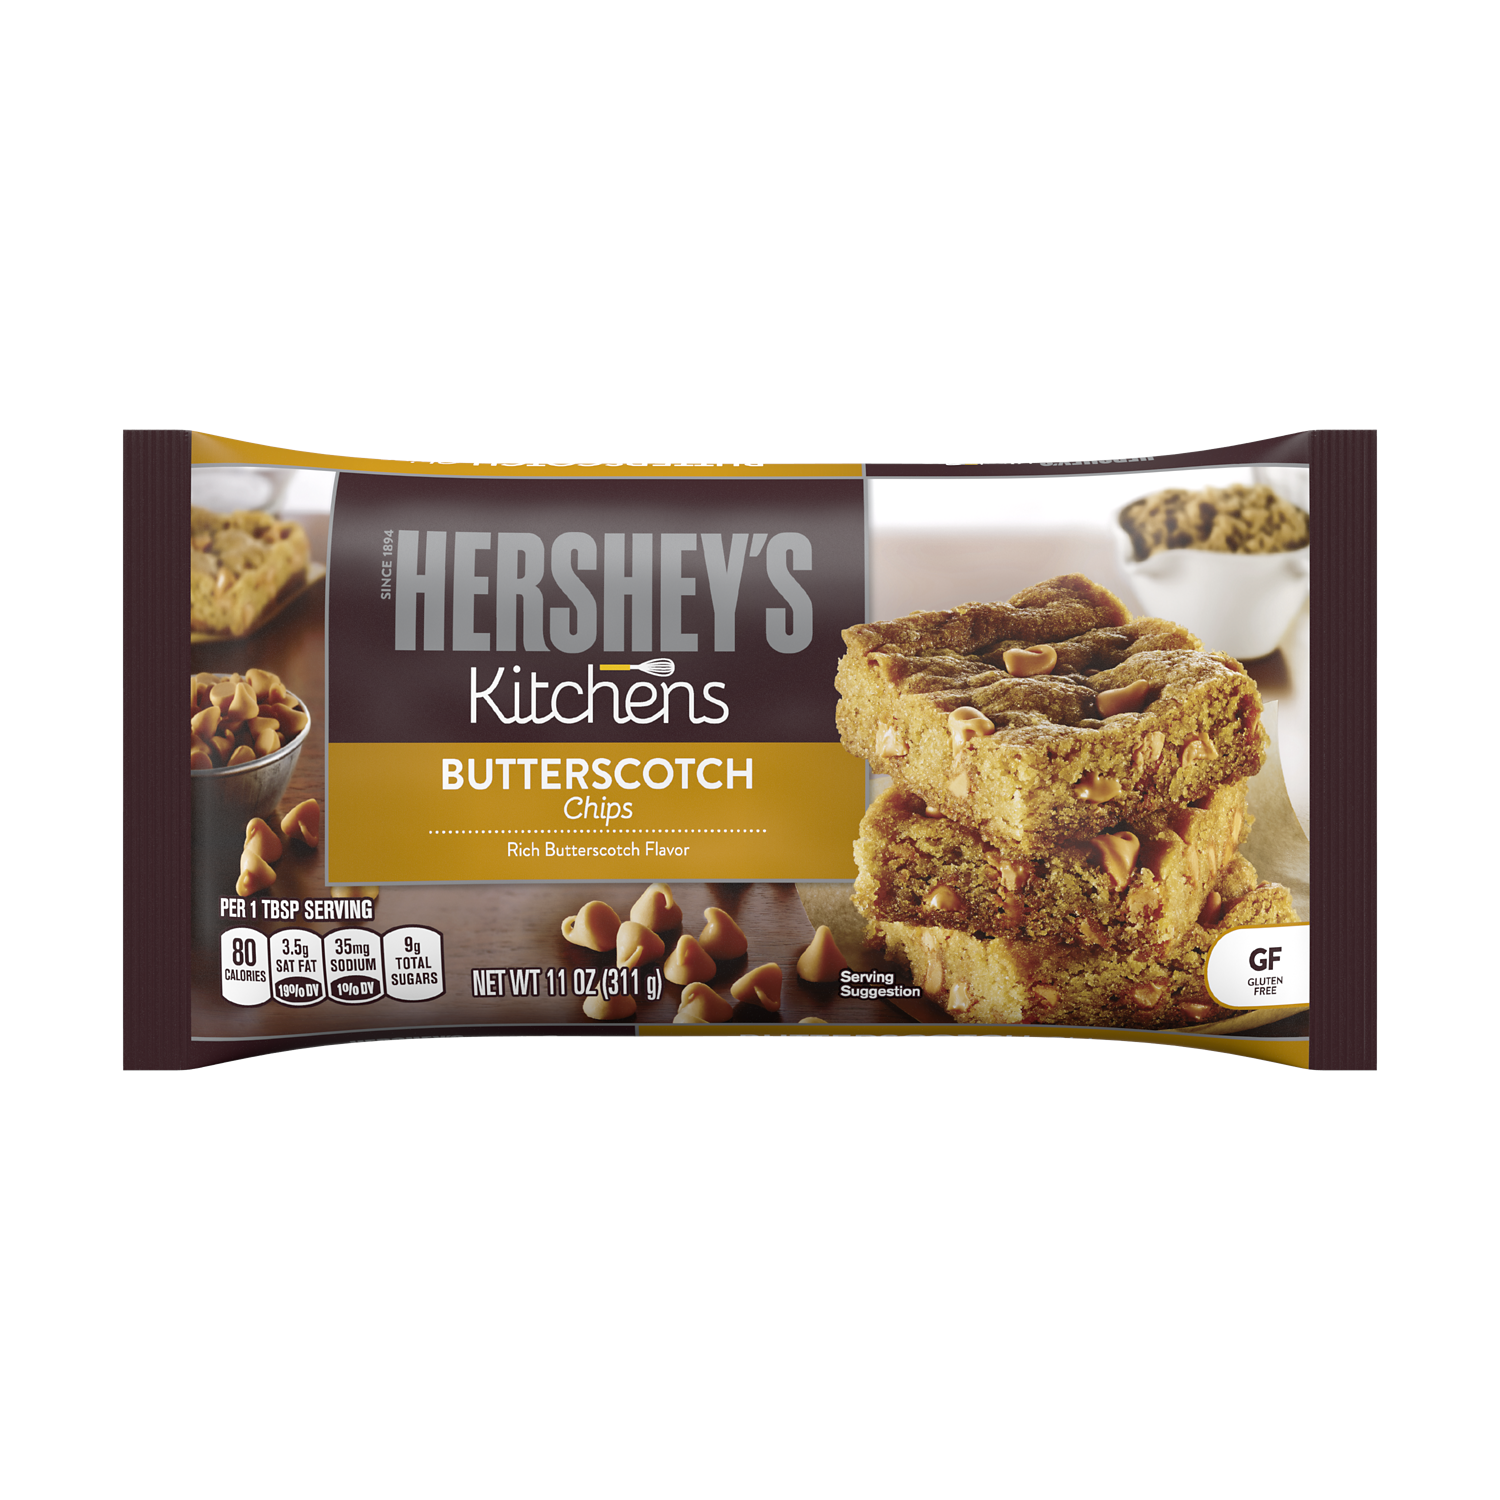 HERSHEY'S Butterscotch Chips, 11 oz bag - Front of Package